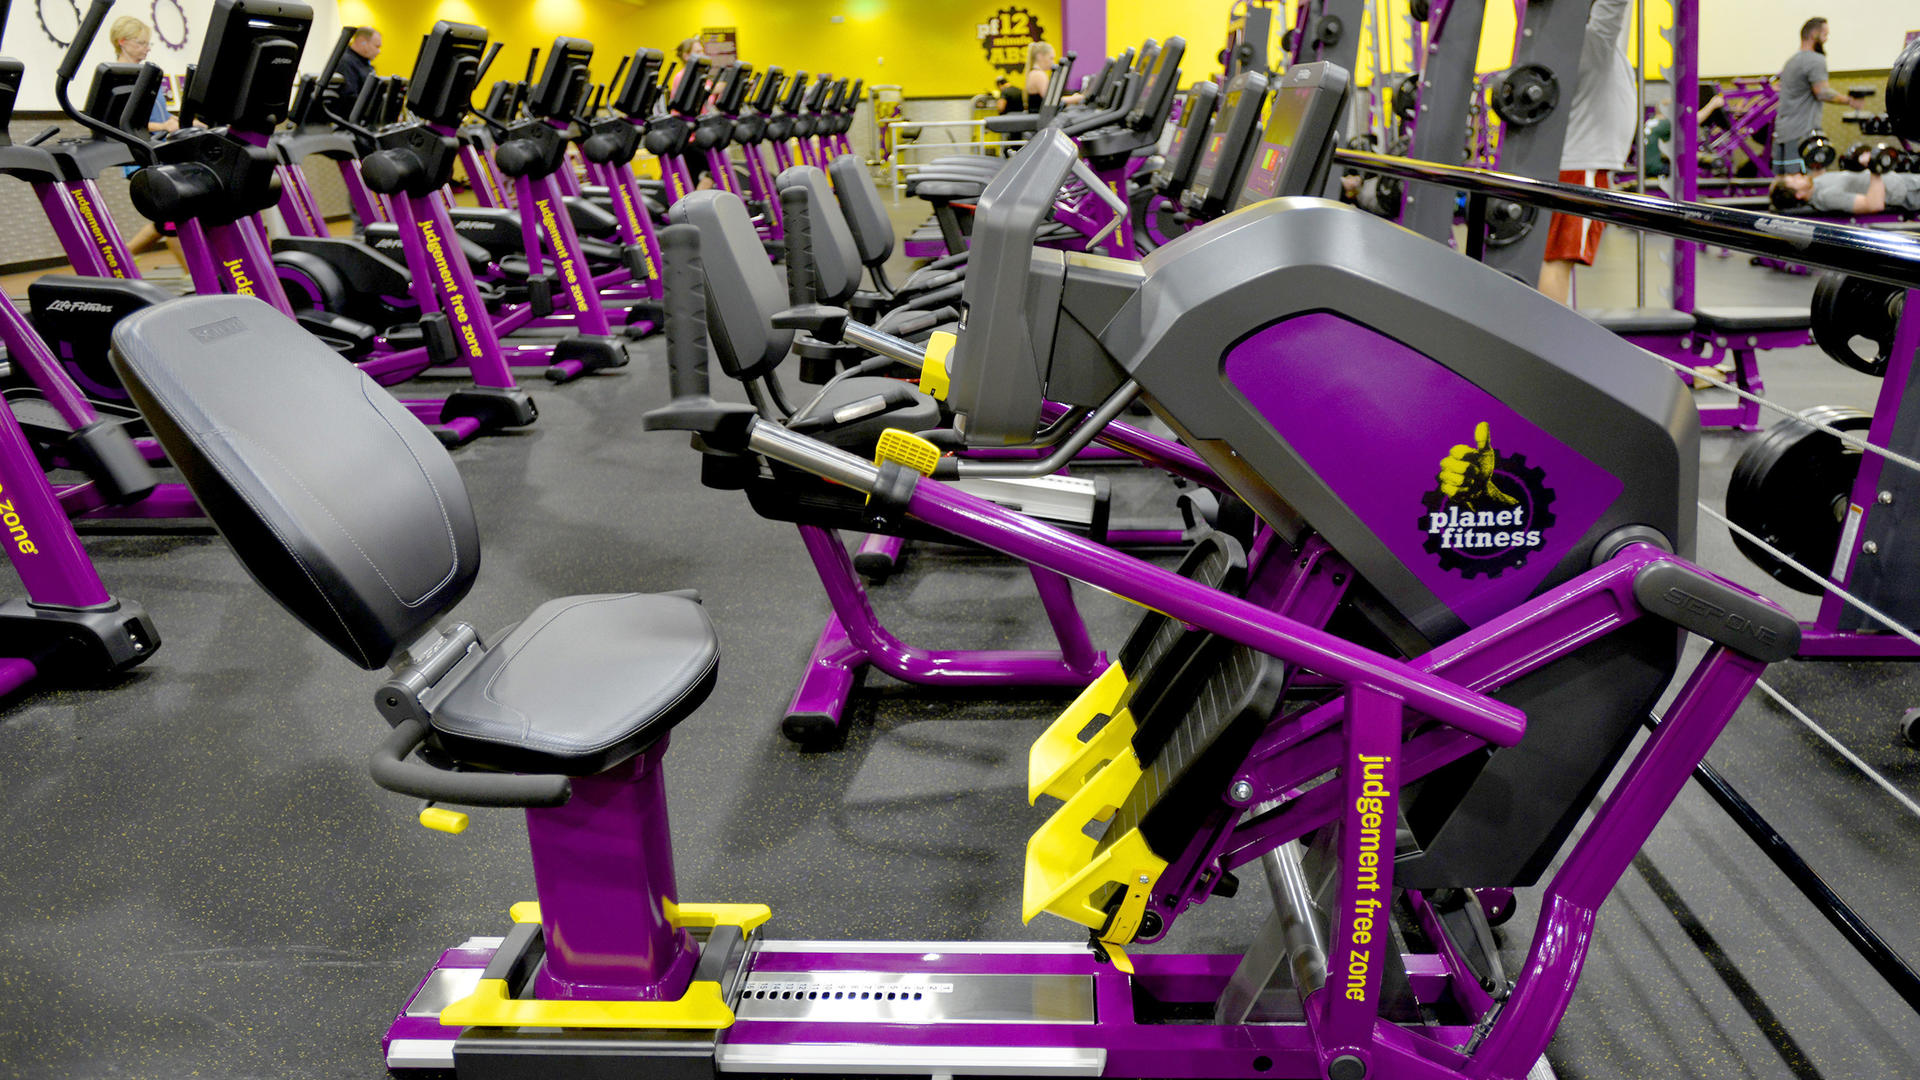 Gym in Hixson TN  5425 Highway 153  Planet Fitness